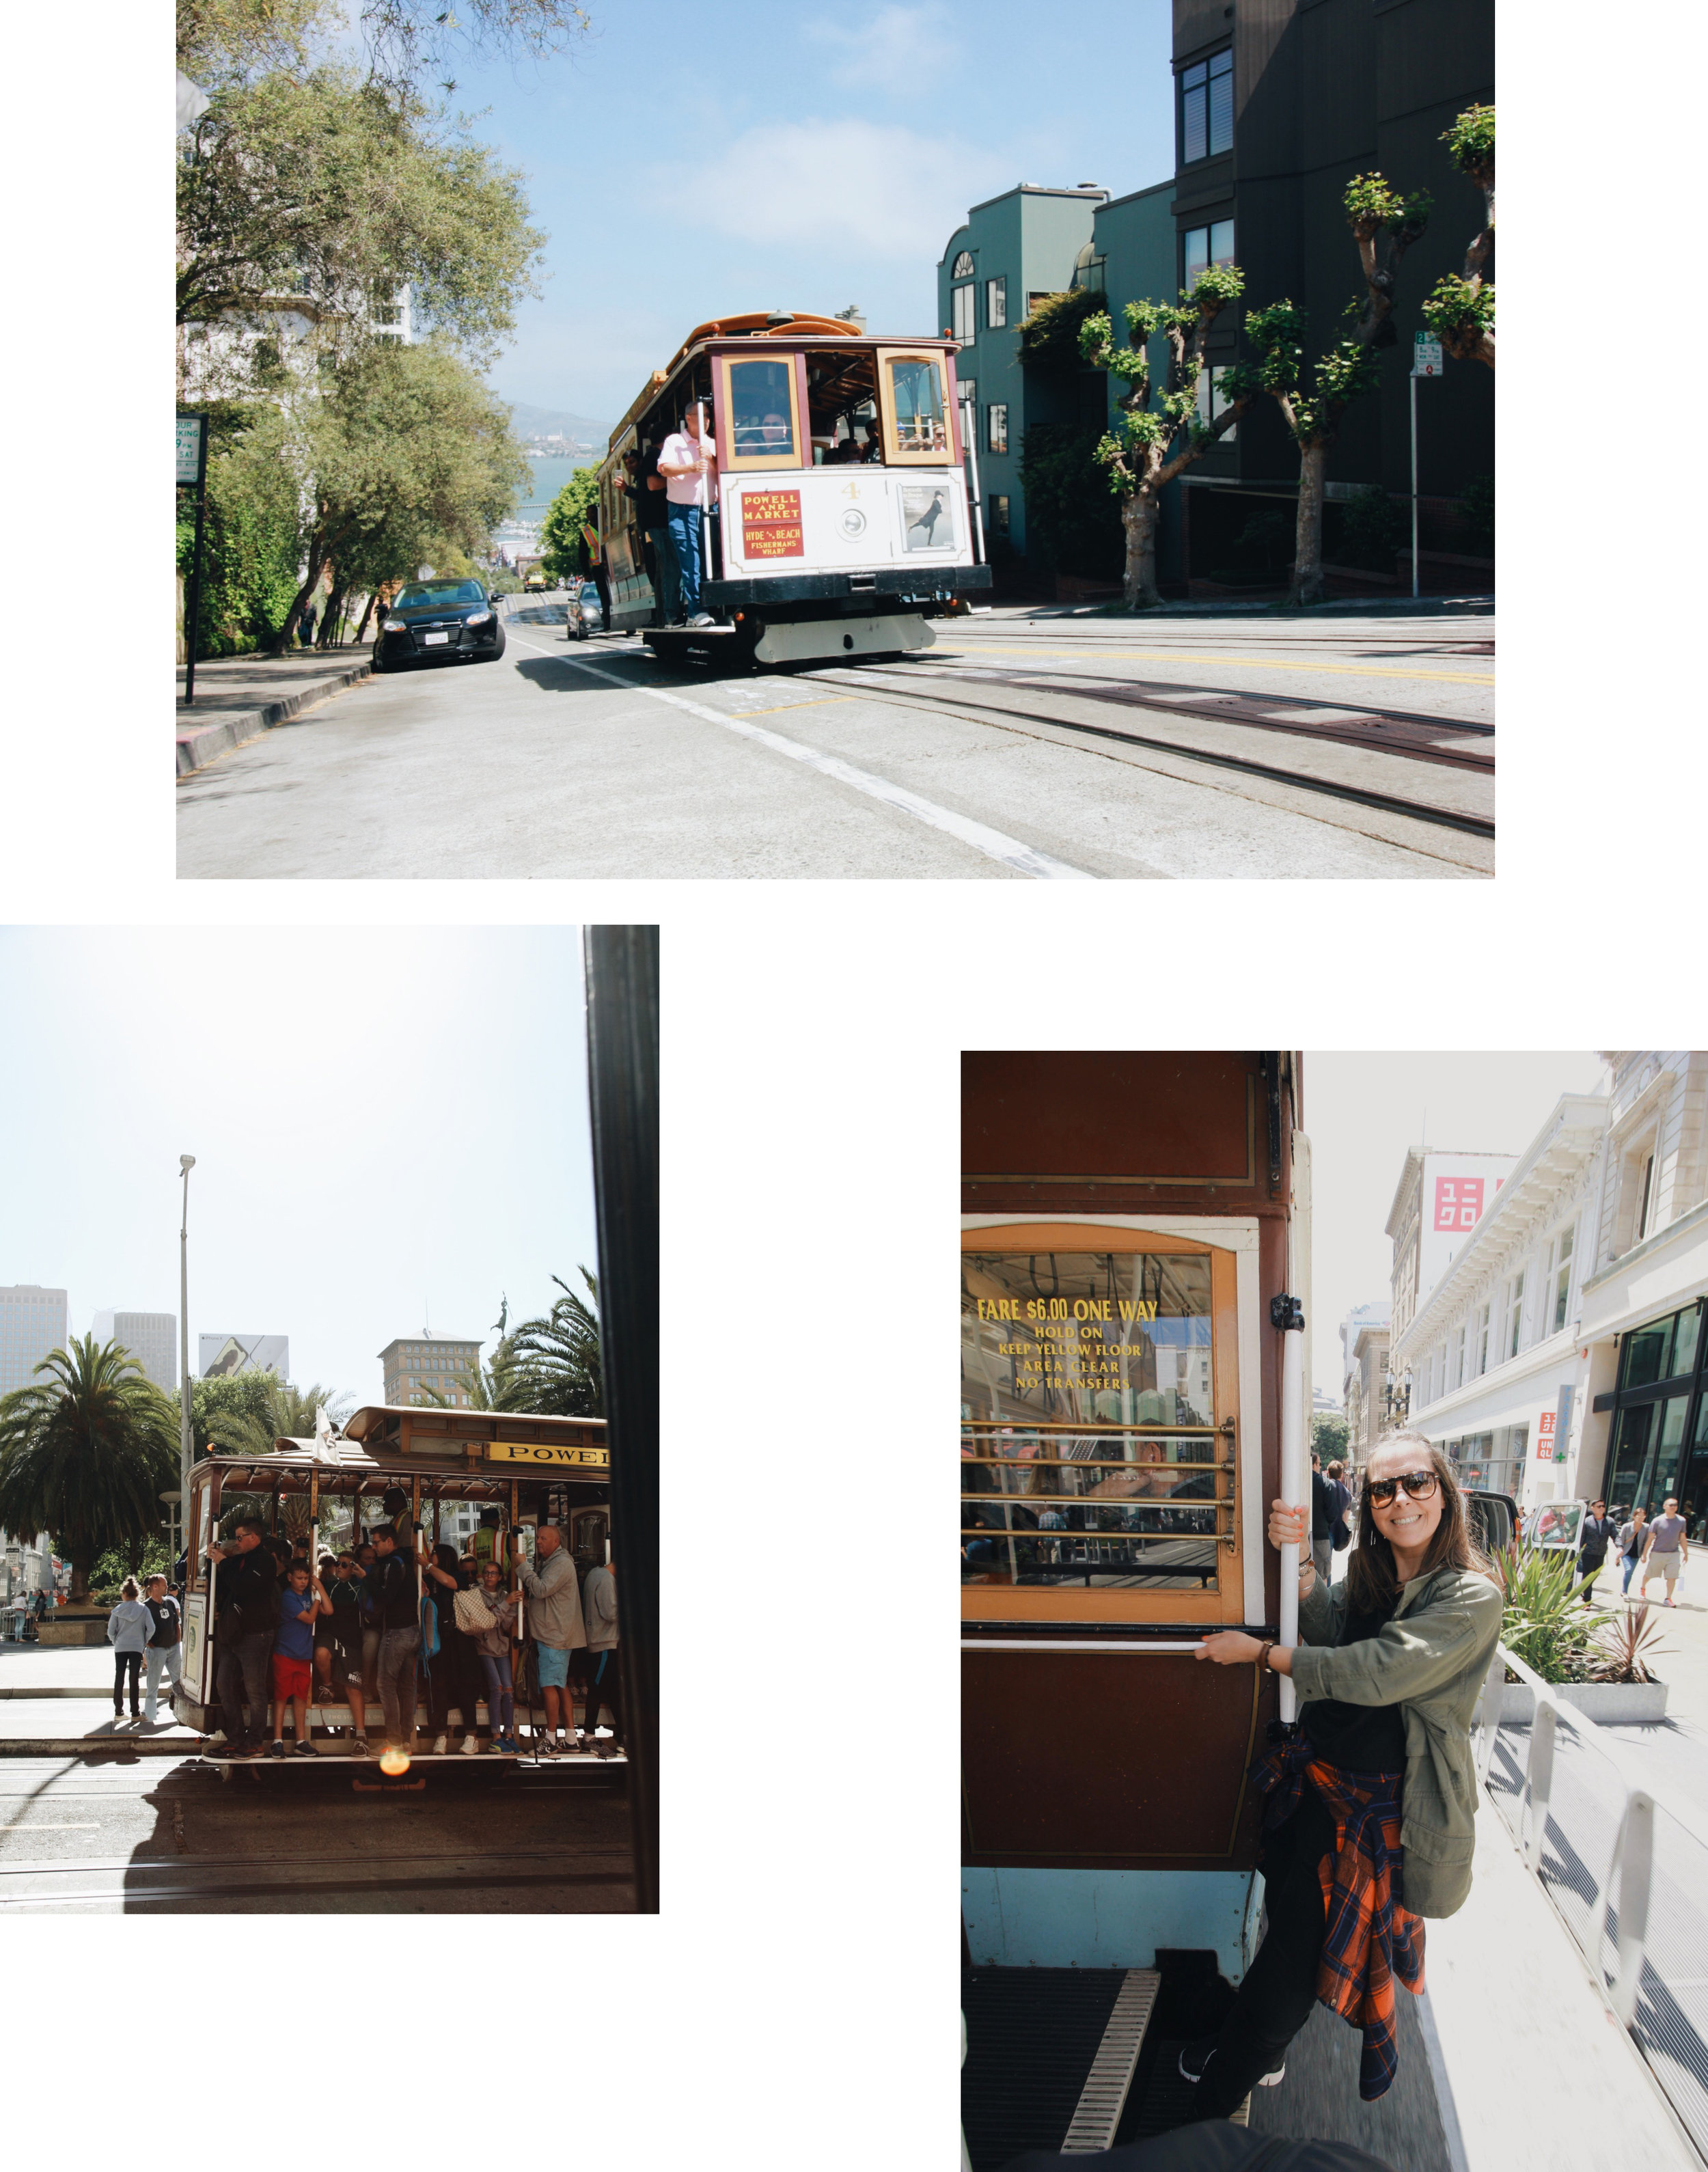 cable-car-transport-san-francisco.JPG